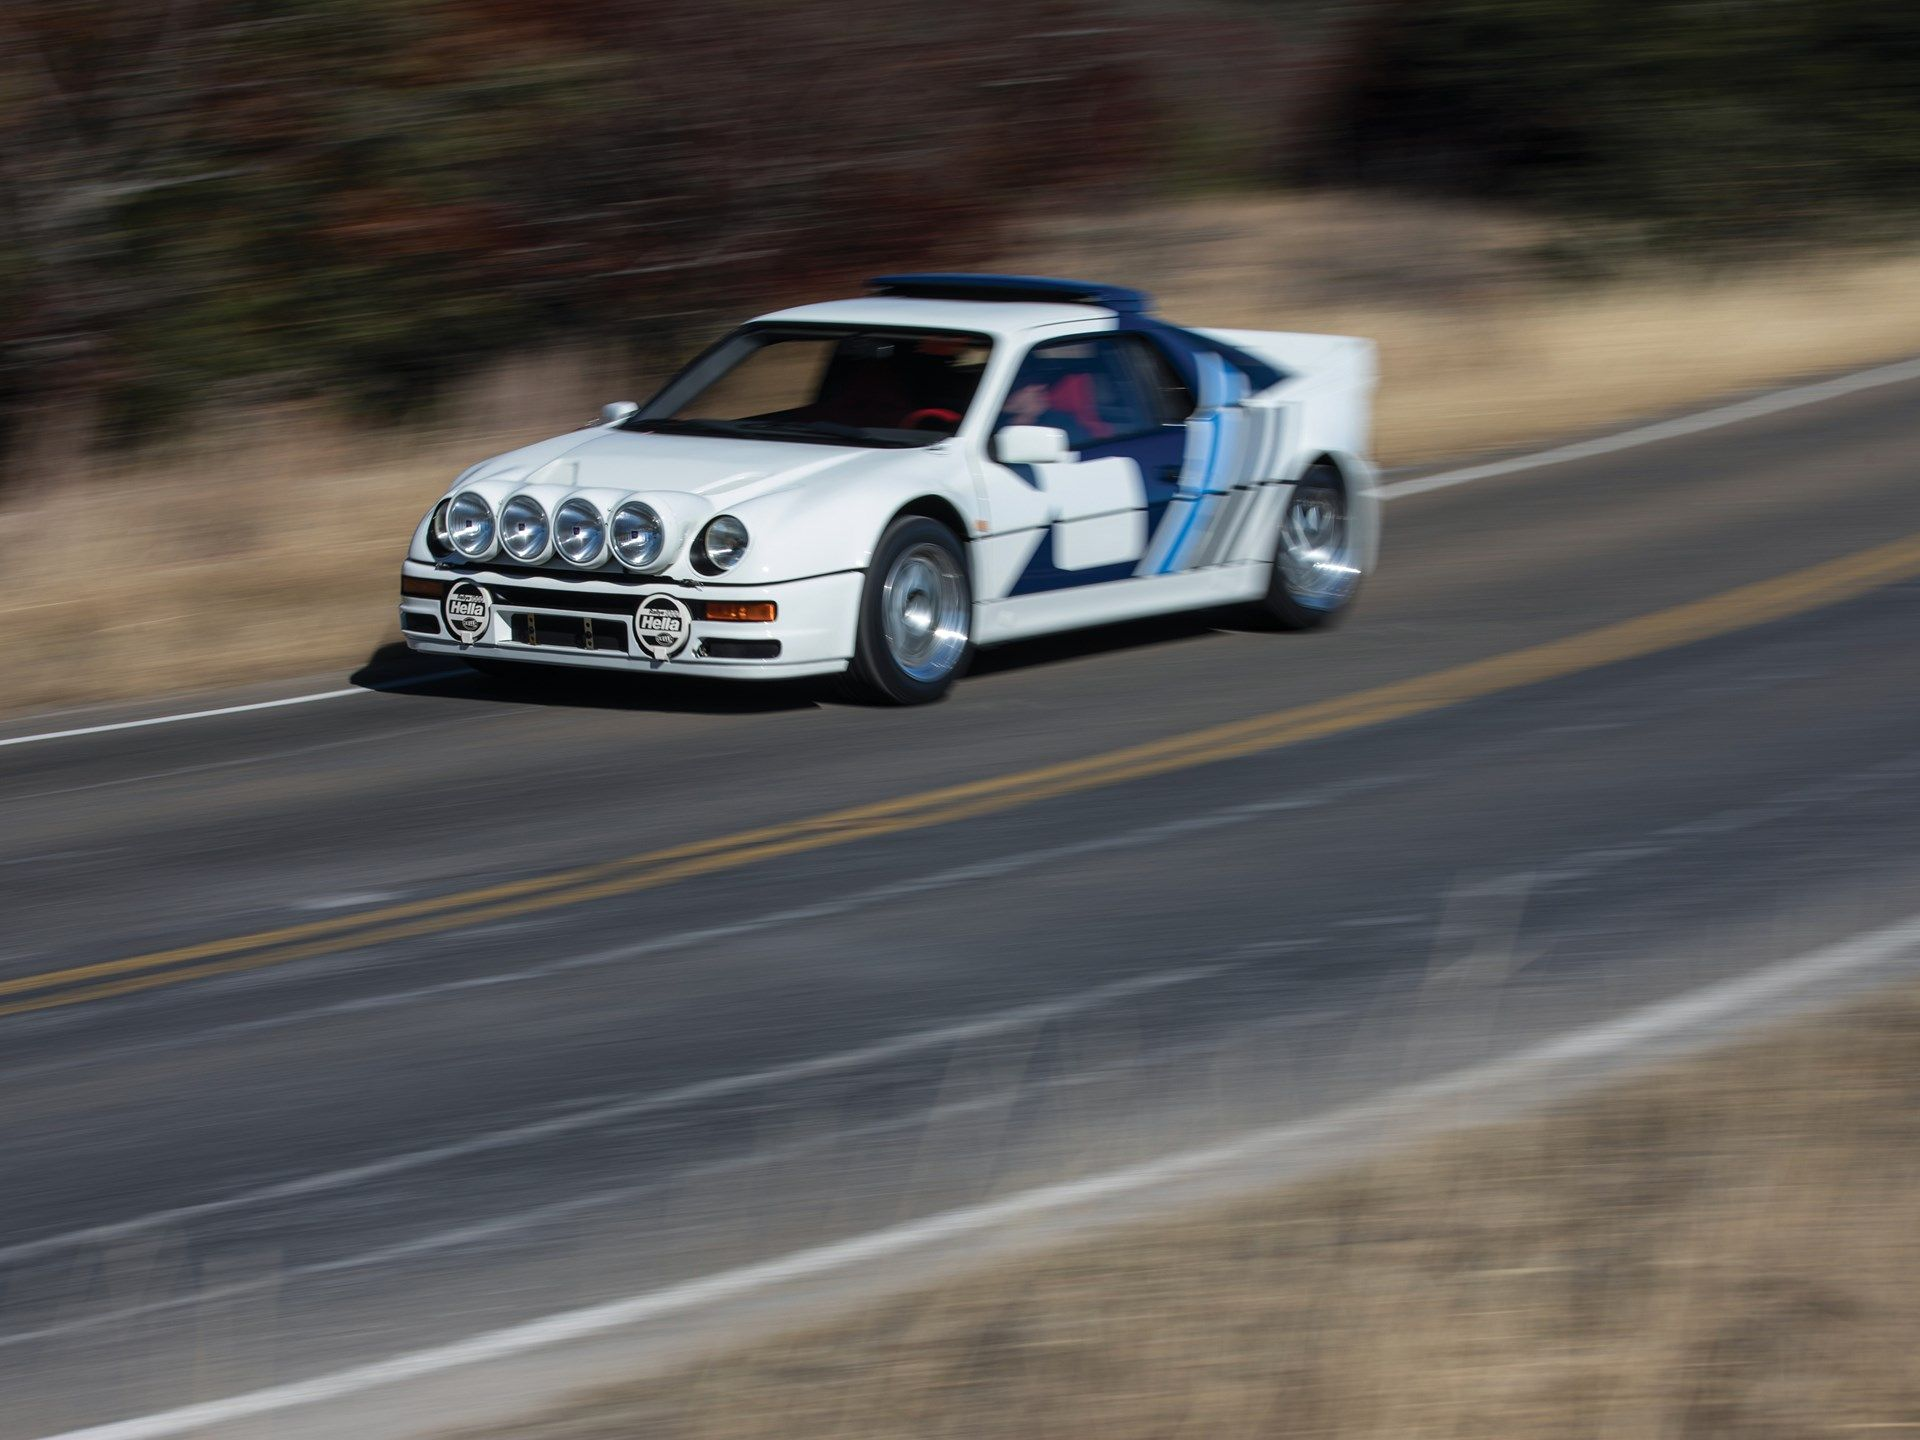 1986 Ford Rs200 Evolution Car In The World Ford Evolution